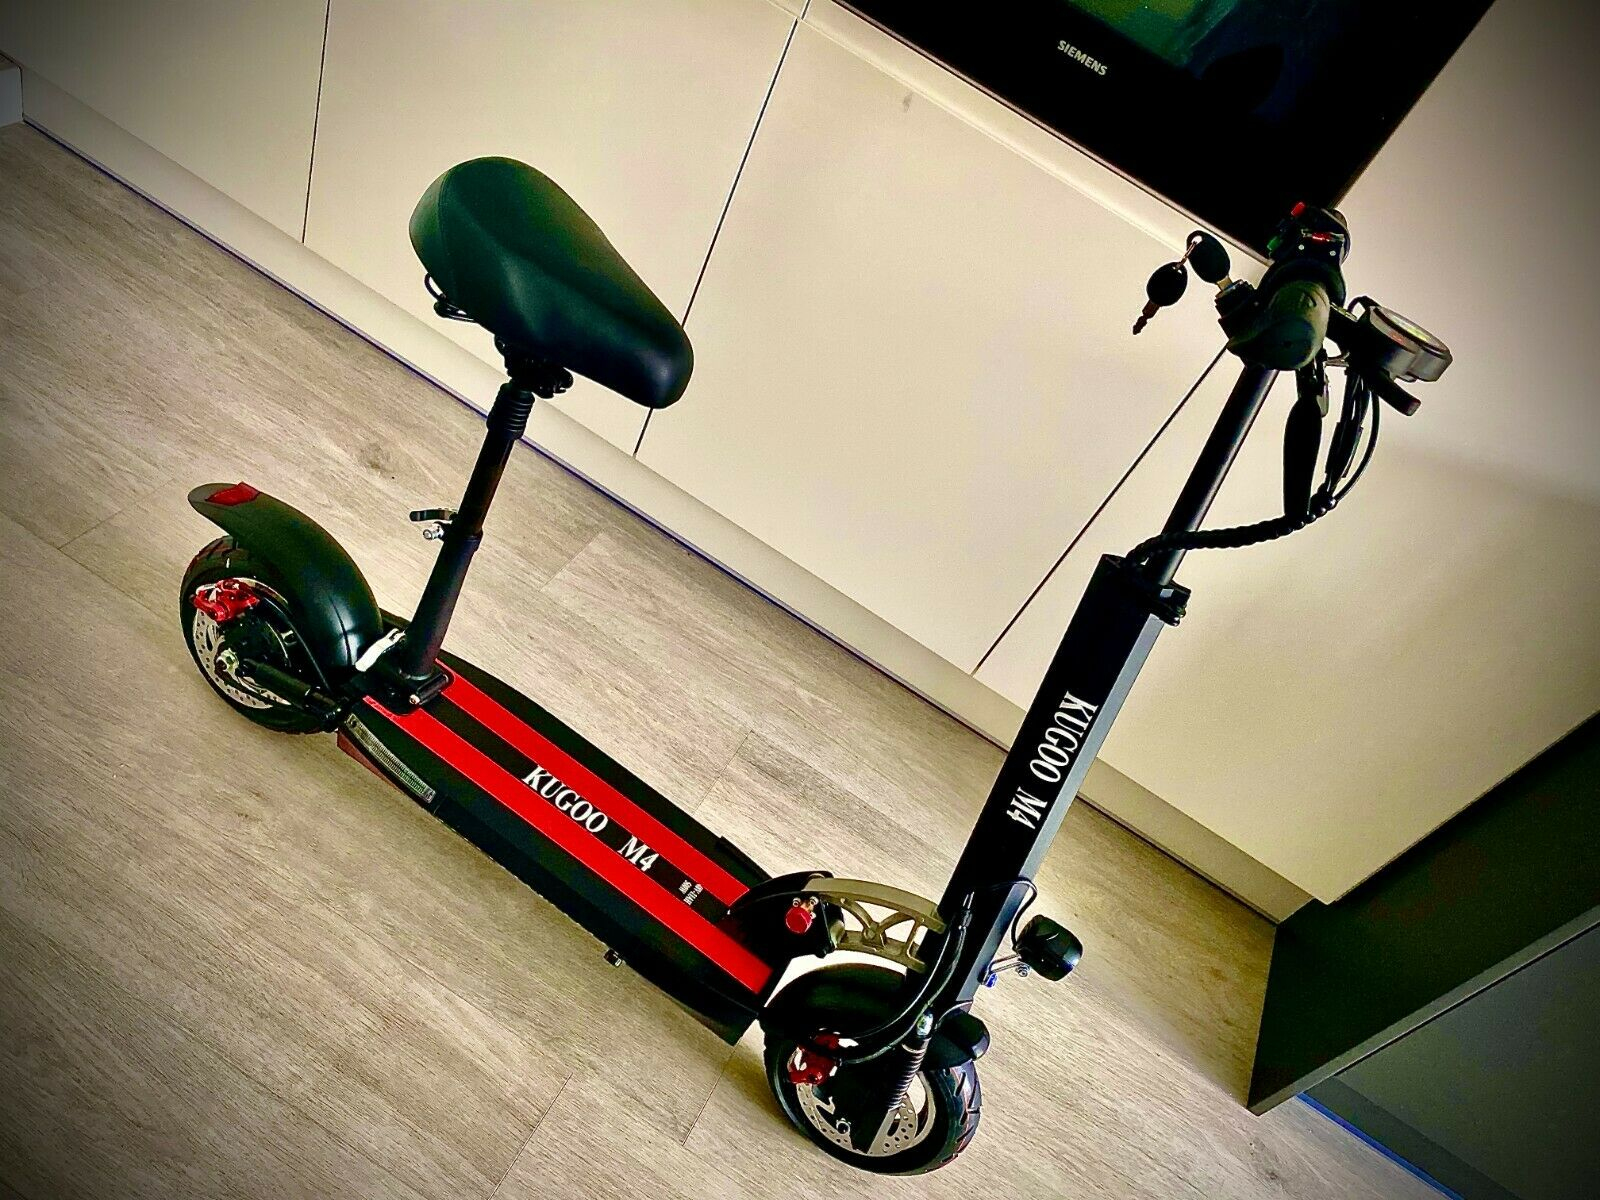 Kugoo M4 electric scooter